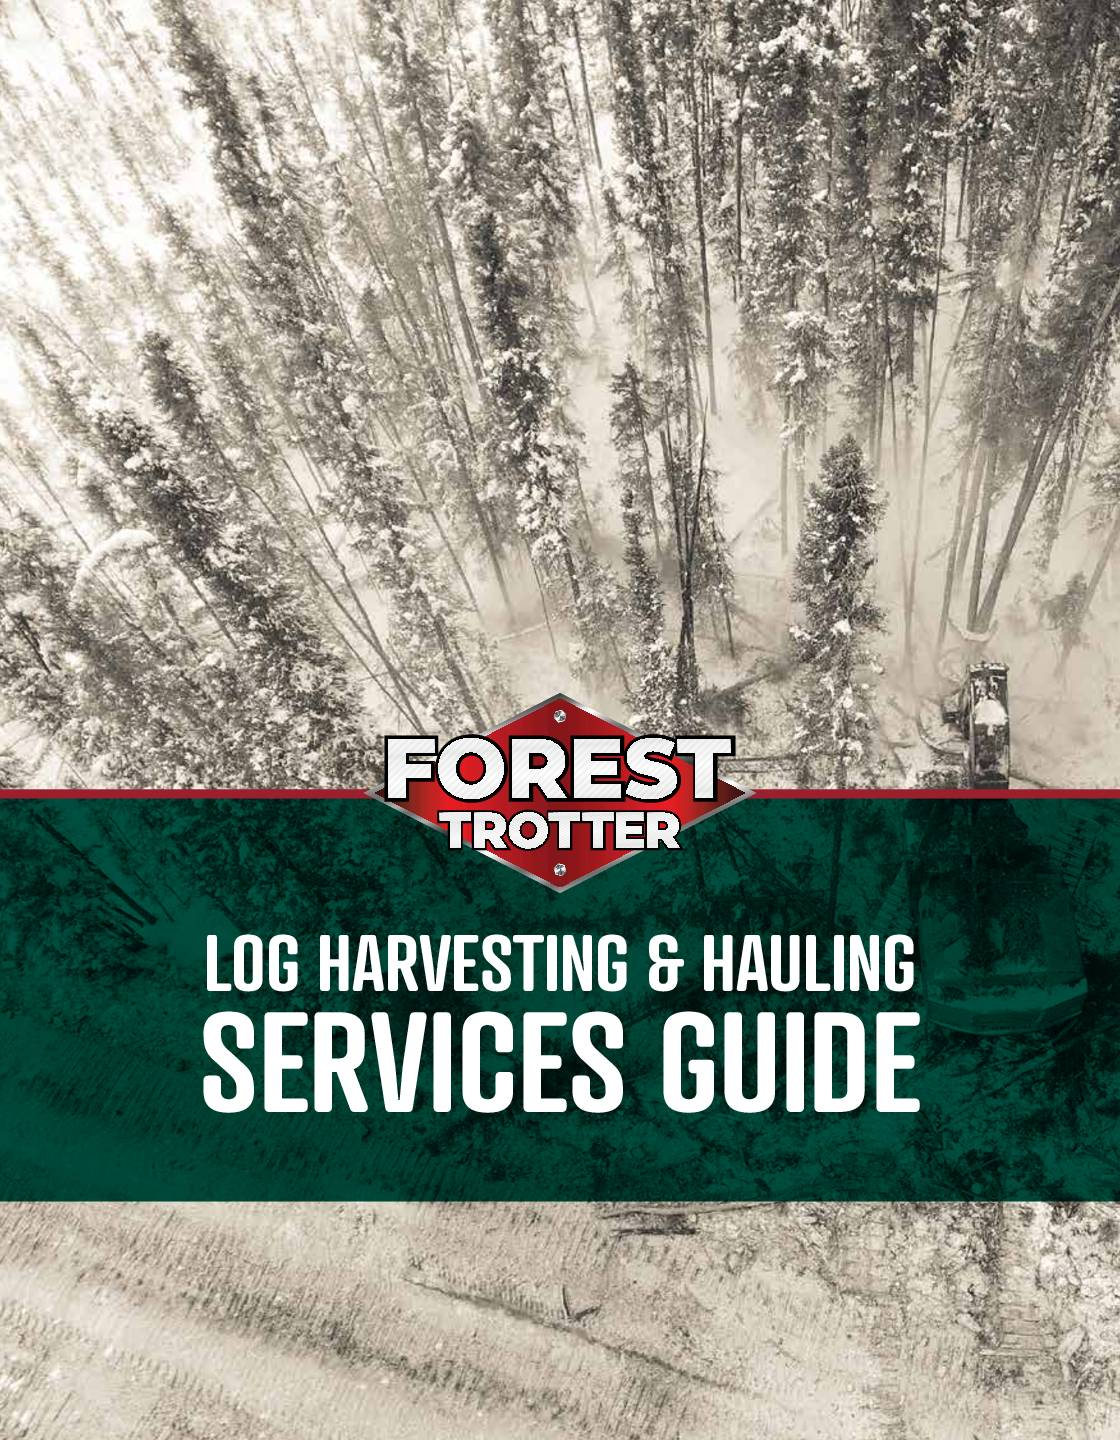 Forest Trotter Services Guide